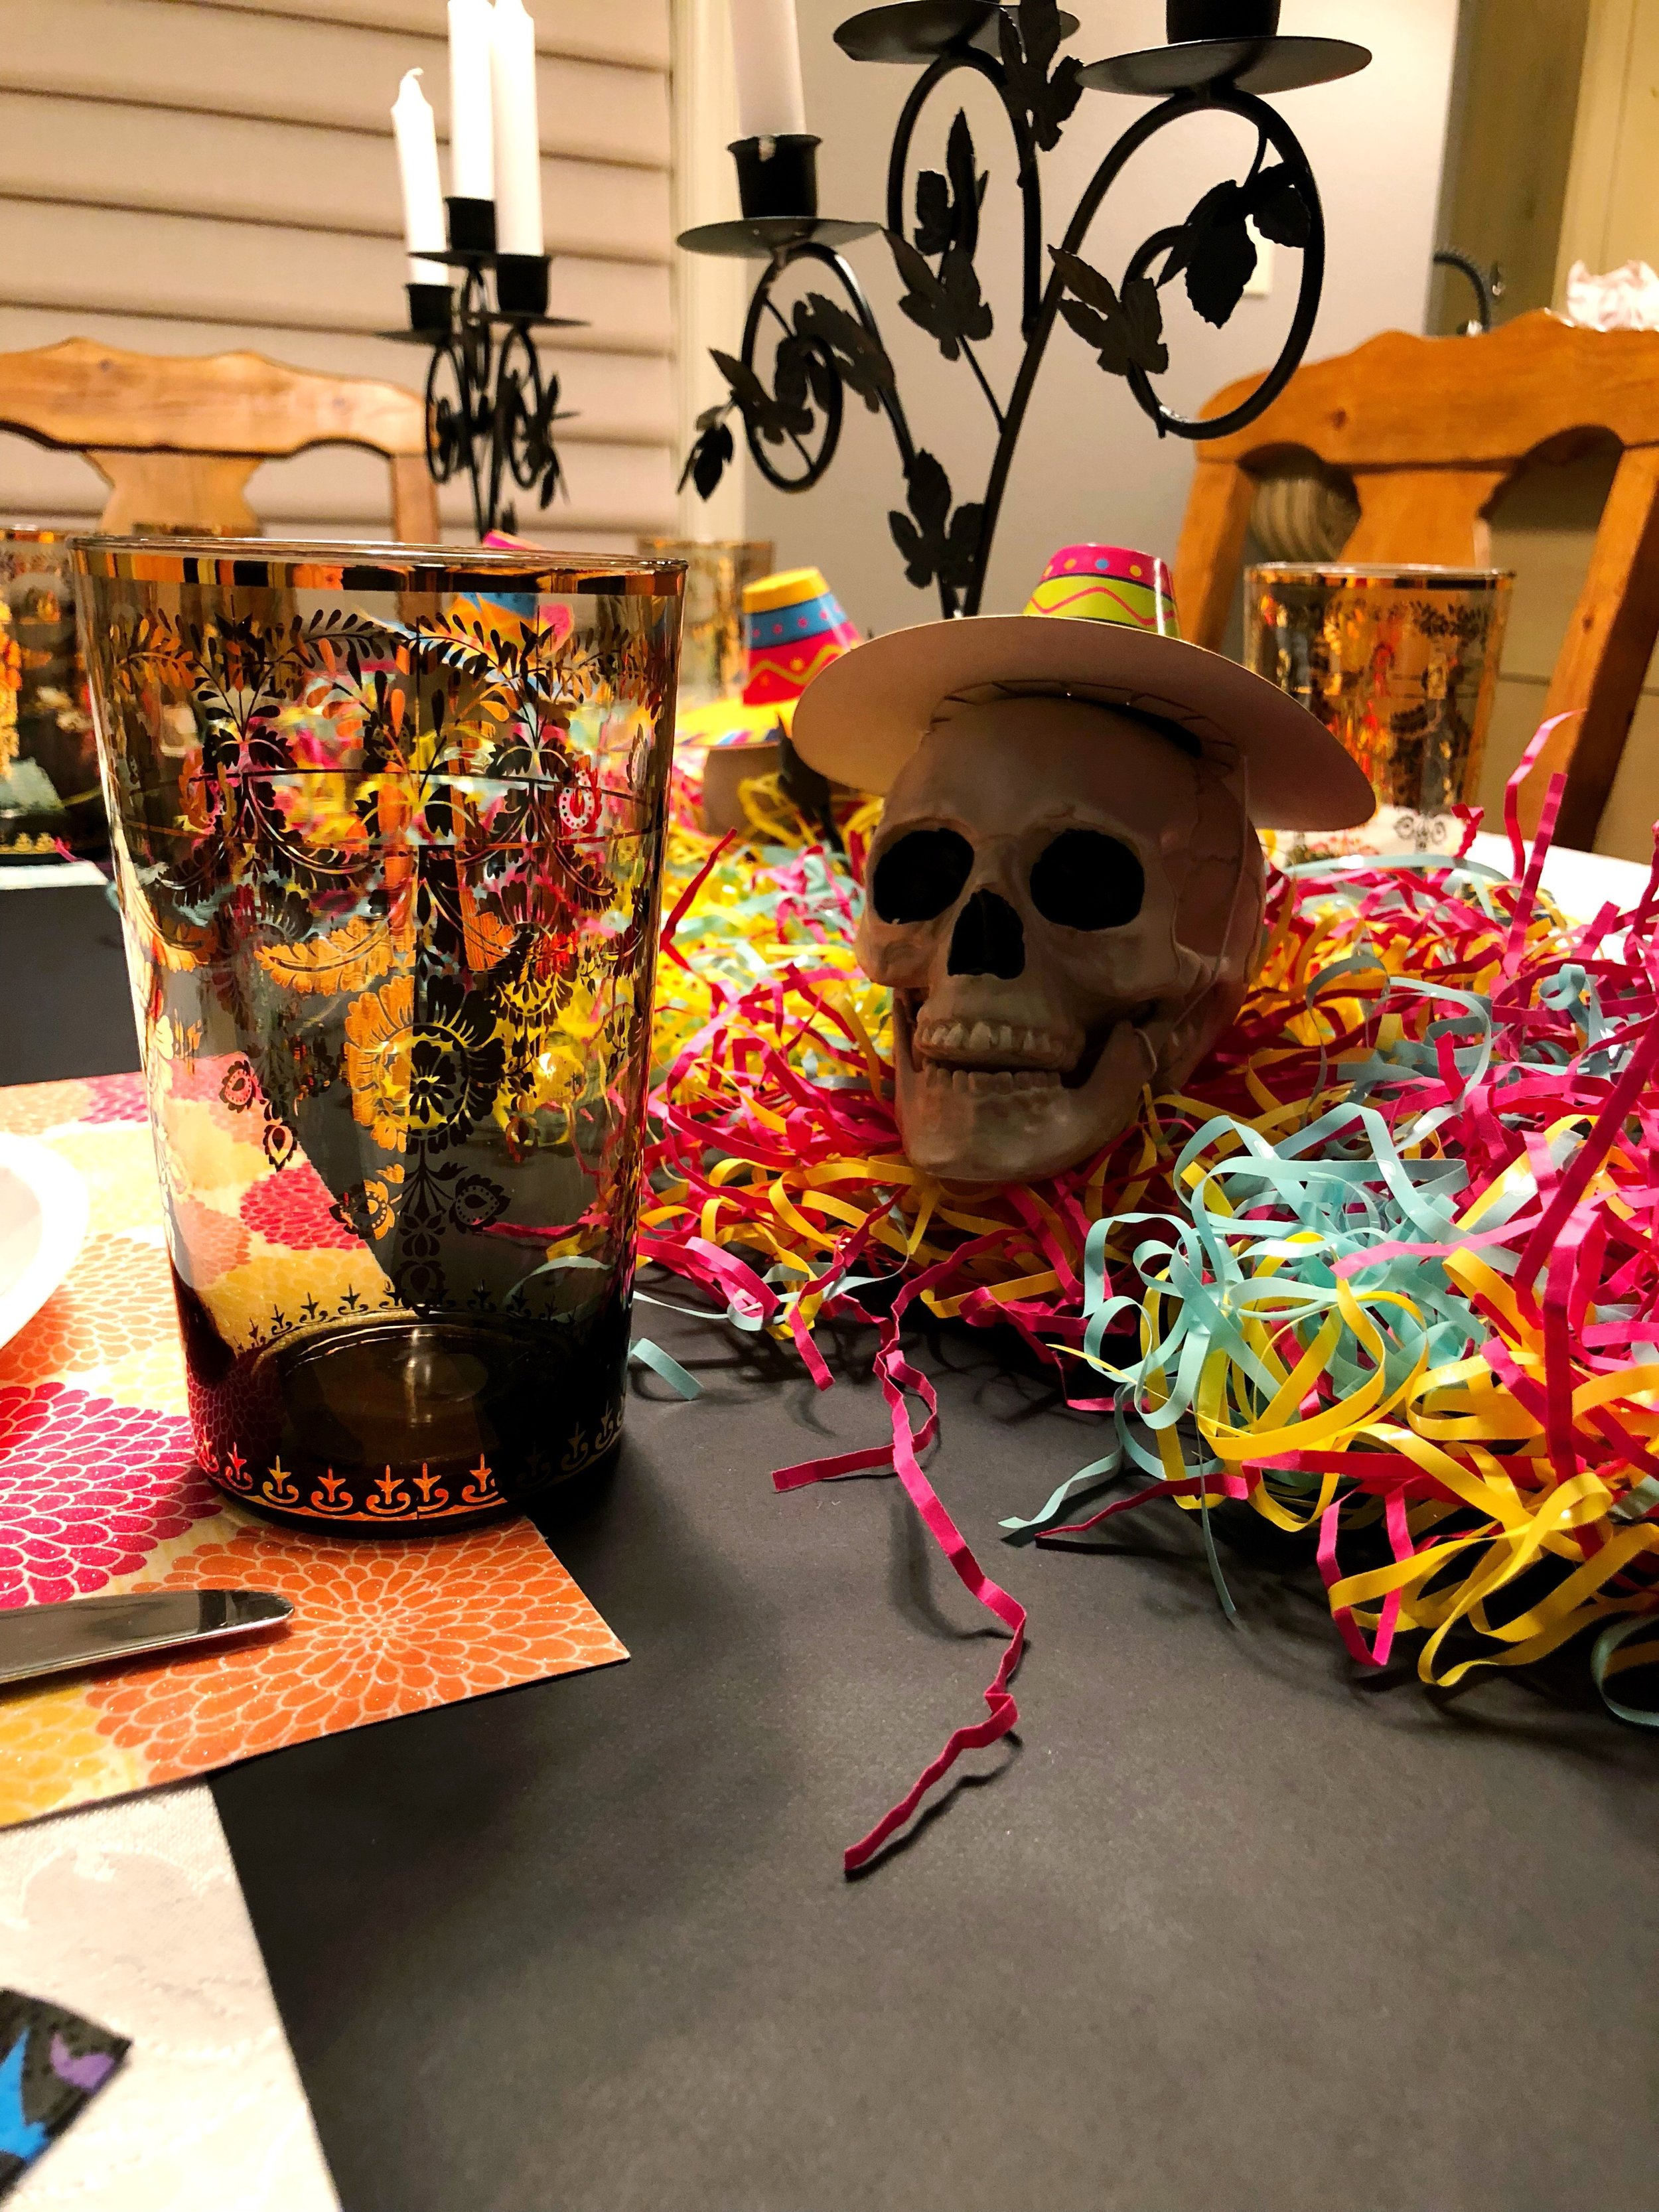 Dia De Los Muertos Table Decorations_Skull Sombrero_Design Organize Party.jpg